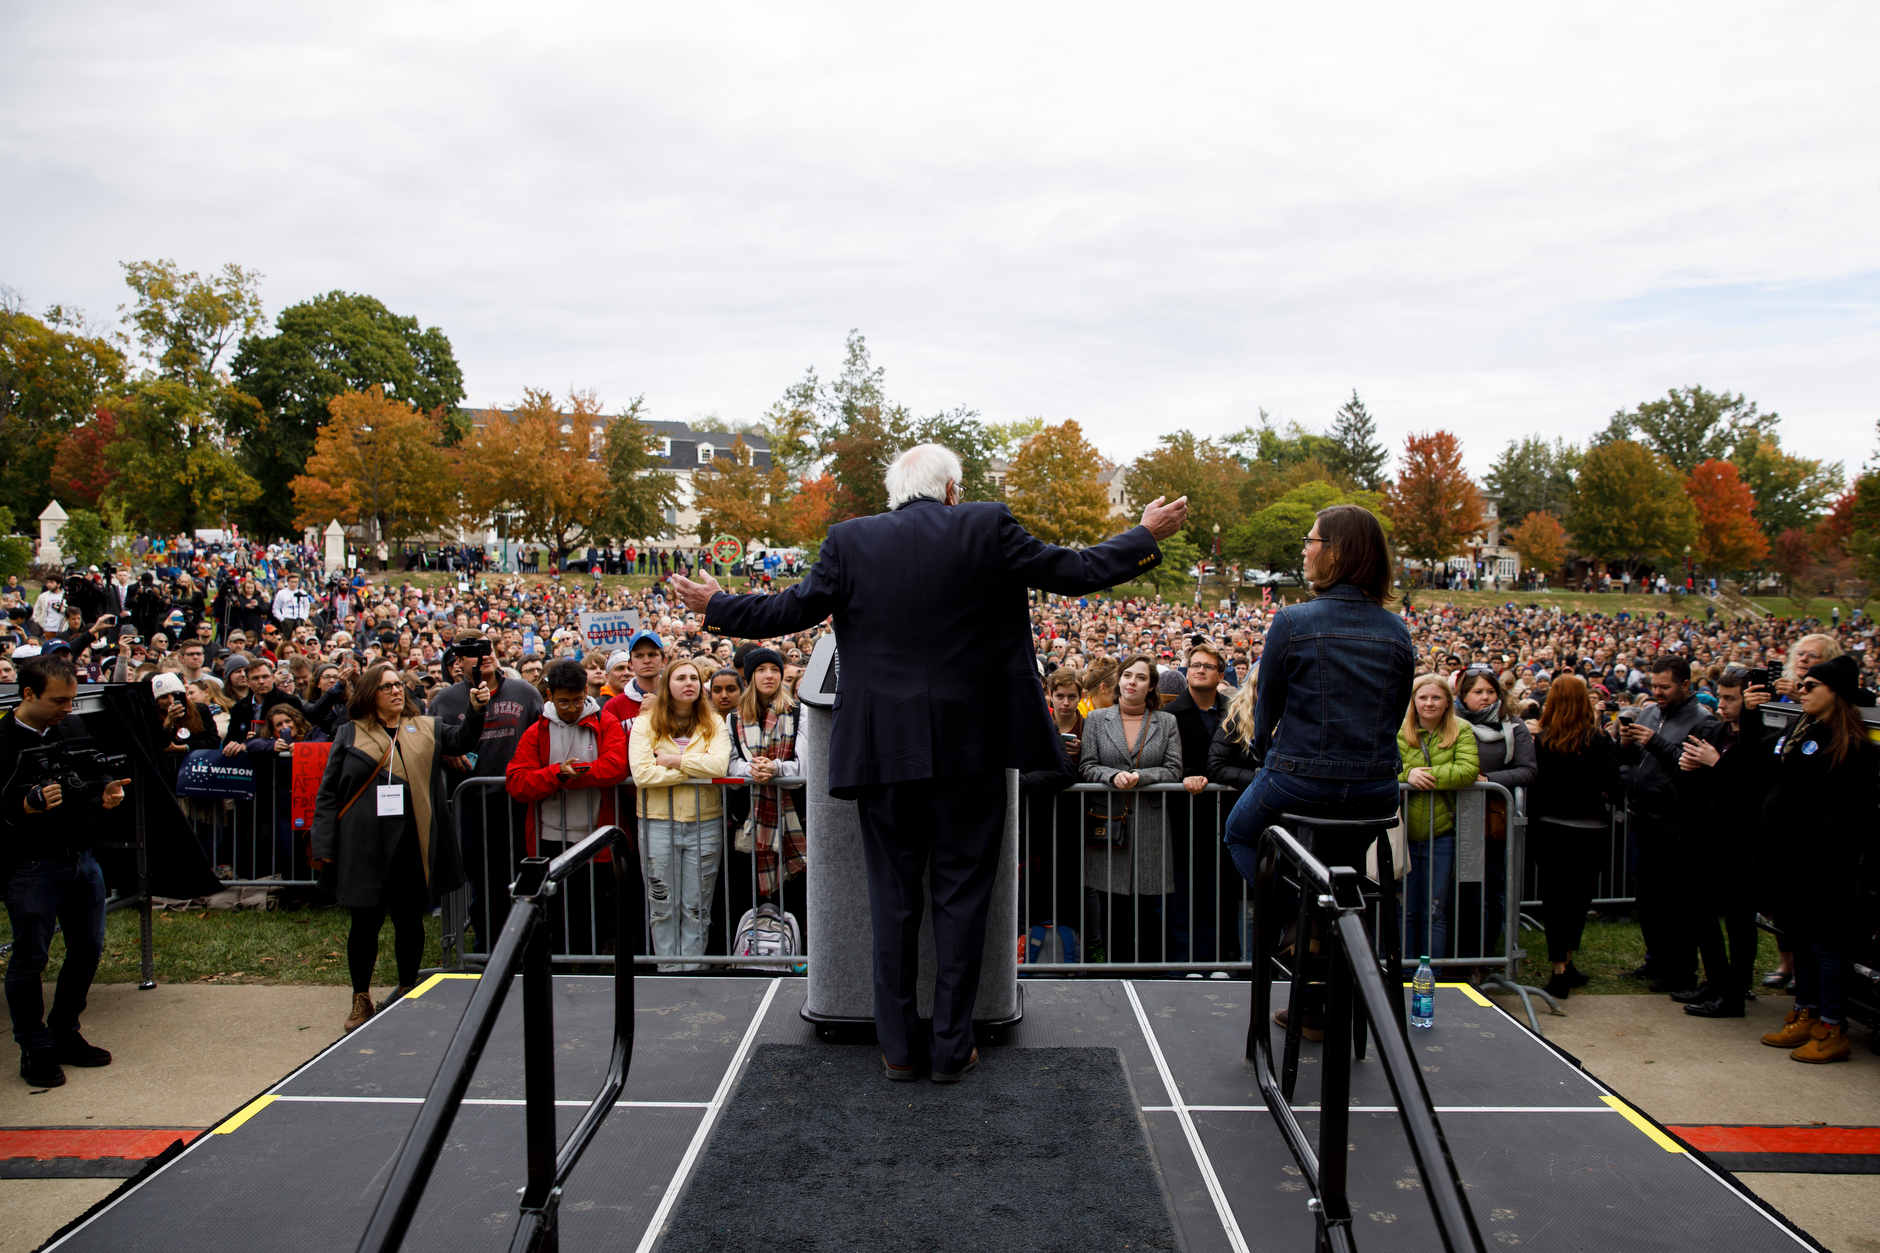 U.S. Sen. Bernie Sanders, I-VT, left, speaks during a rally for Liz Watson, right, the Democratic nominee for Indiana's 9th congressional district, in Dunn Meadow at Indiana University Bloomington on Friday, Oct. 19, 2018. (James Brosher/IU Communications)